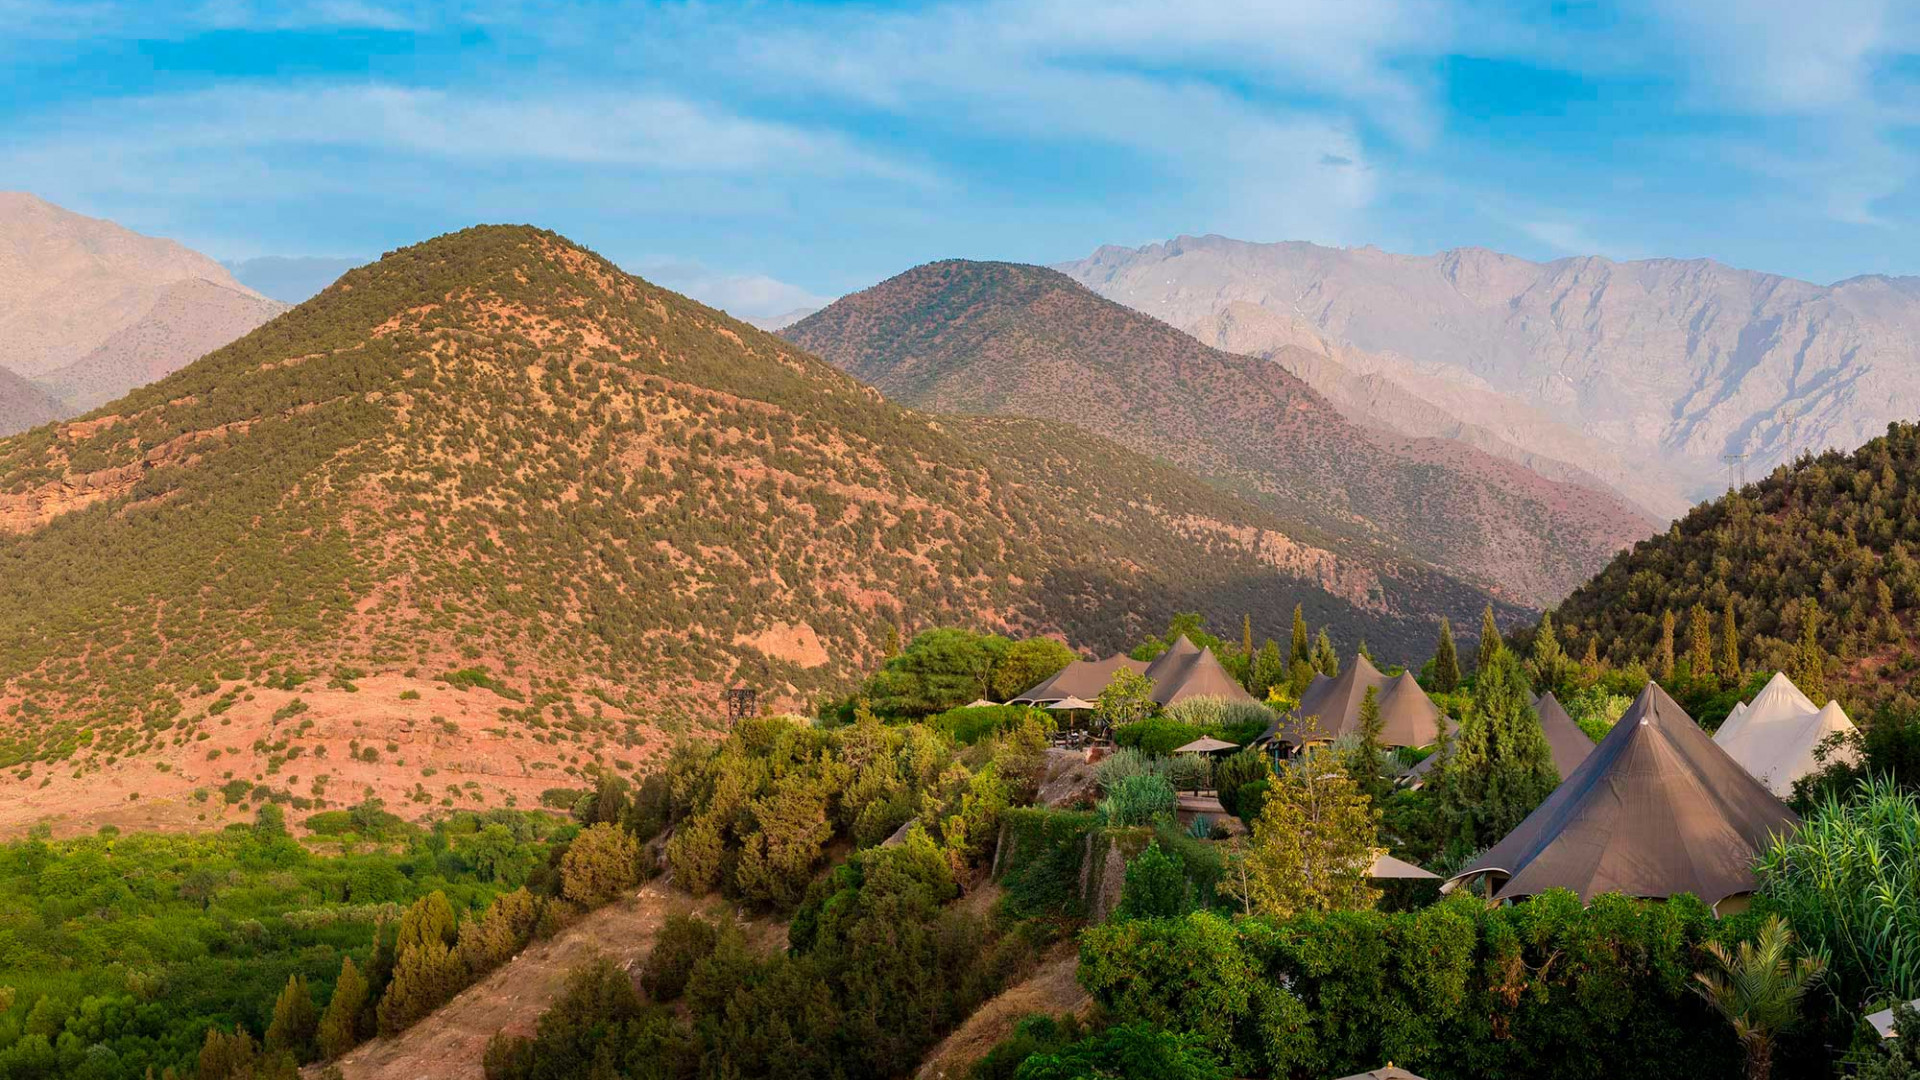 Atlas Mountains of Morocco